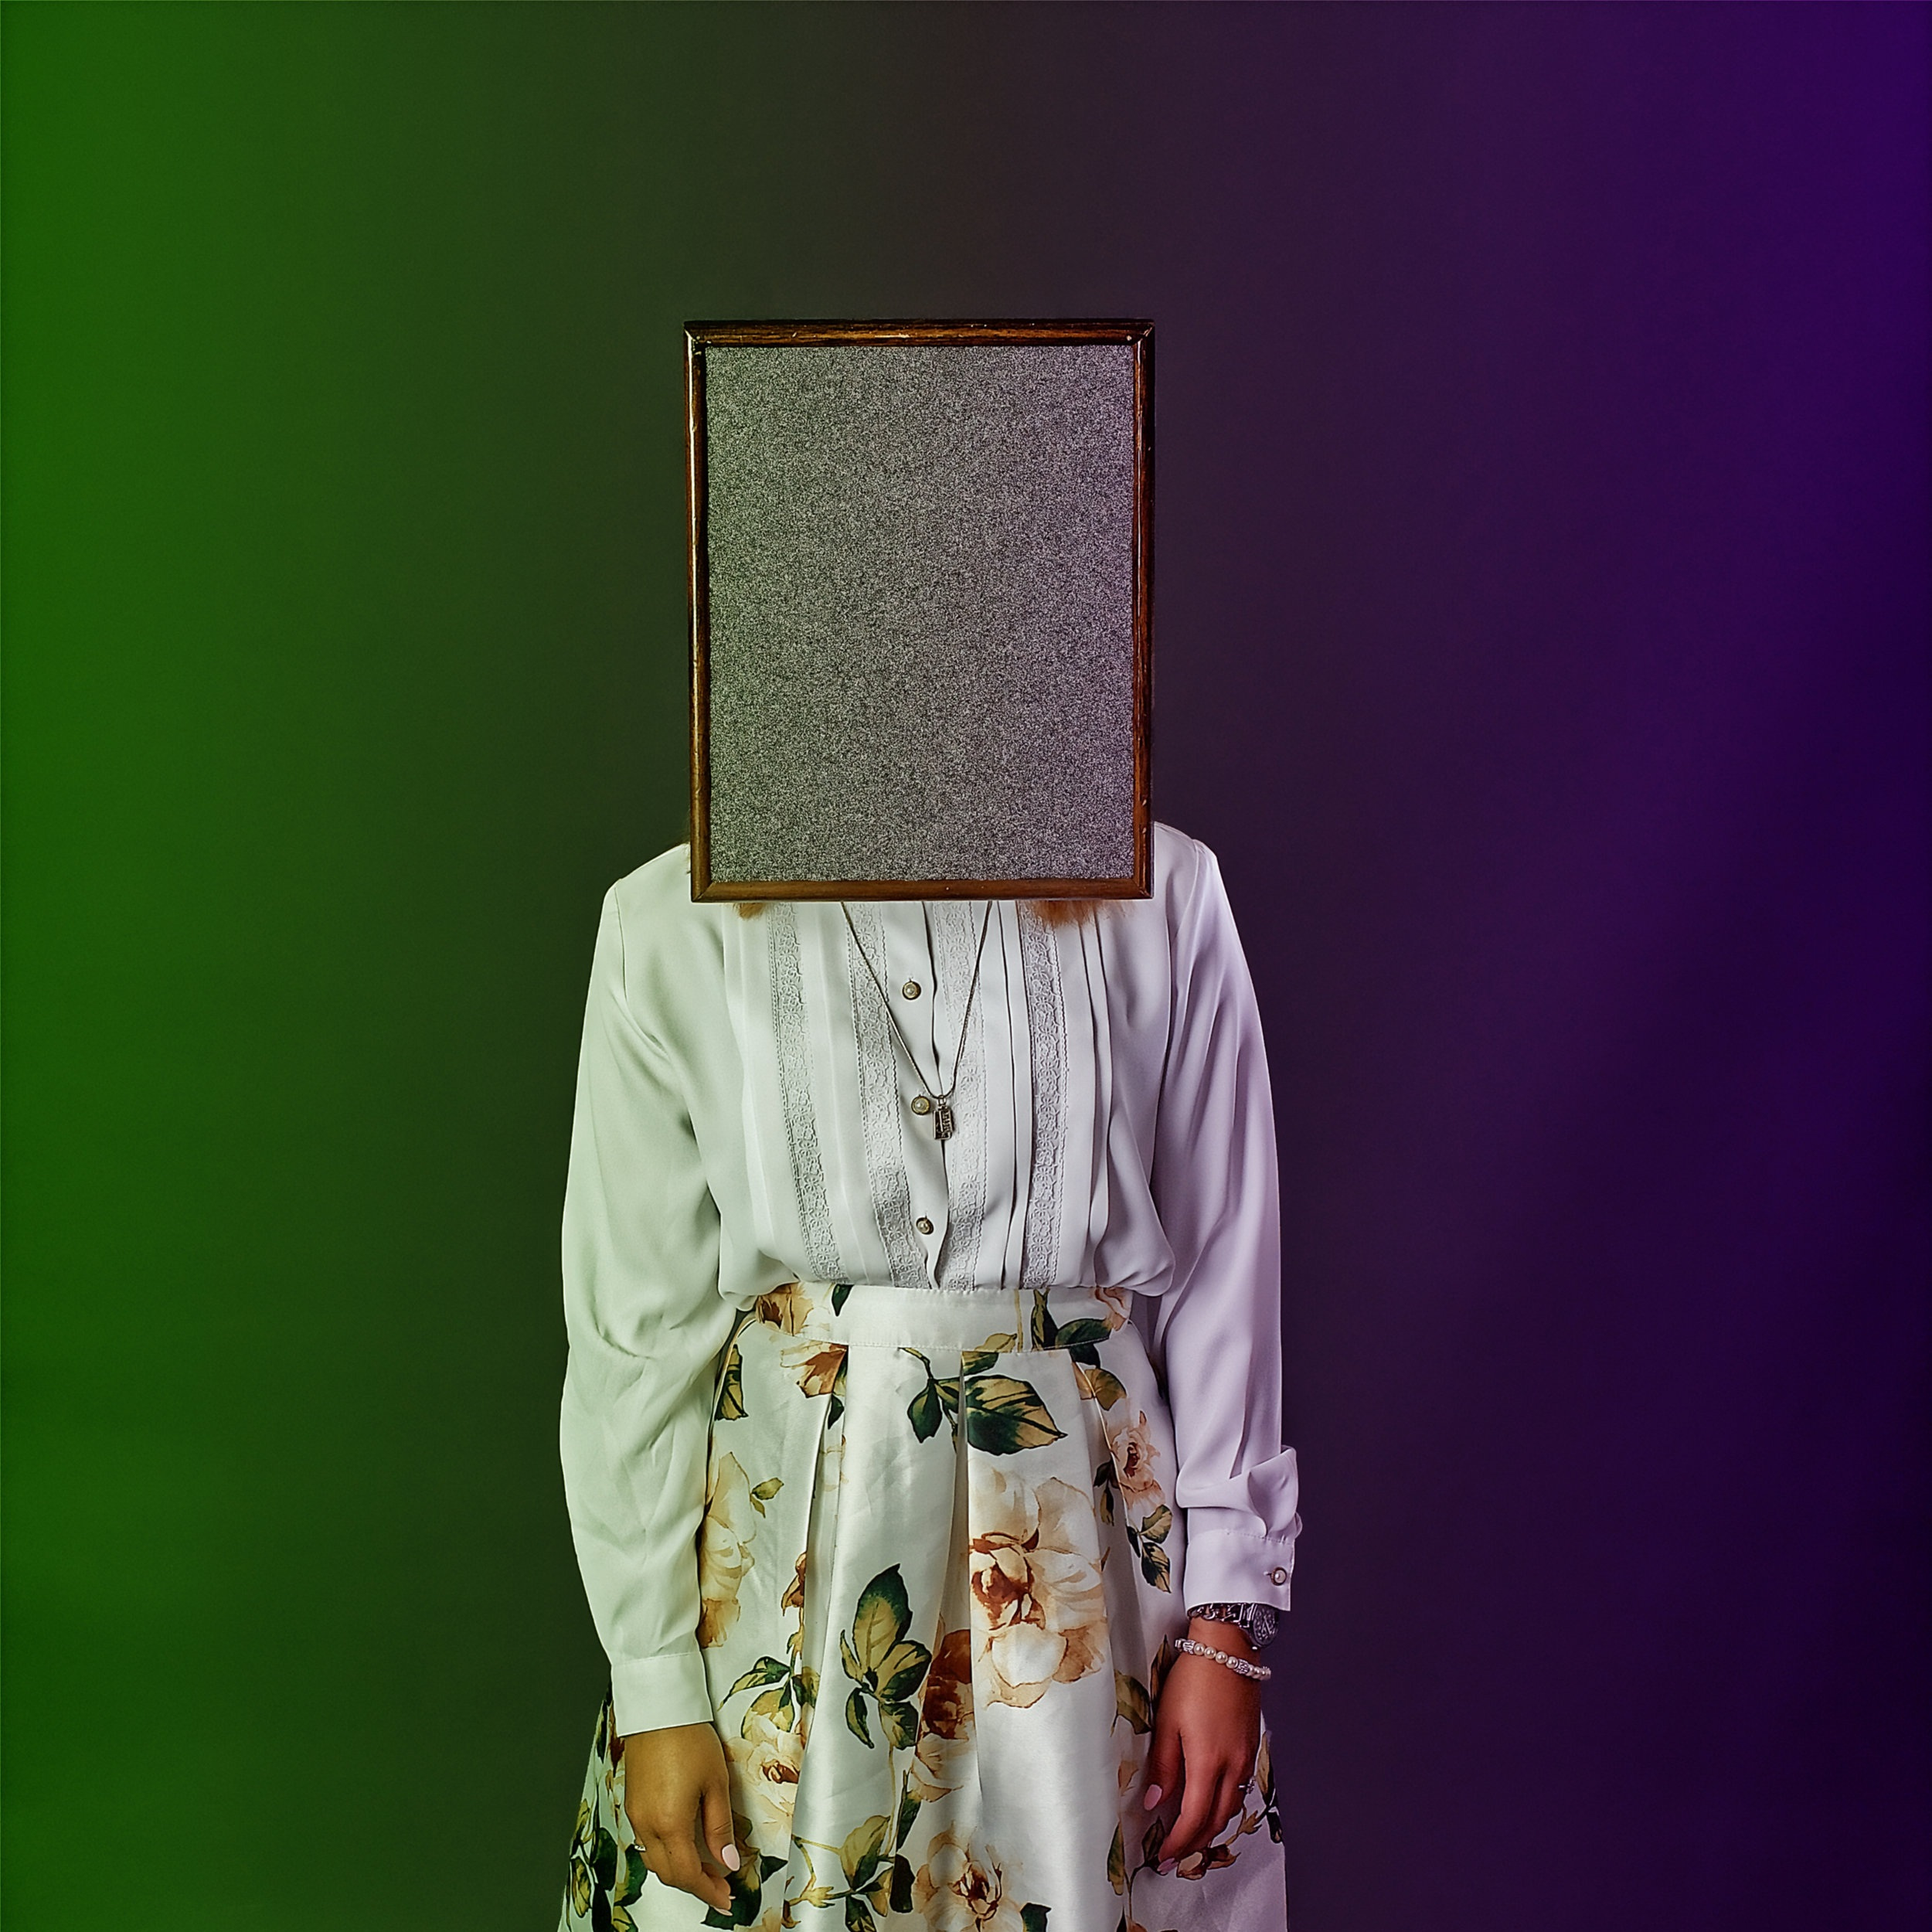 Person with a square of static obscuring their head